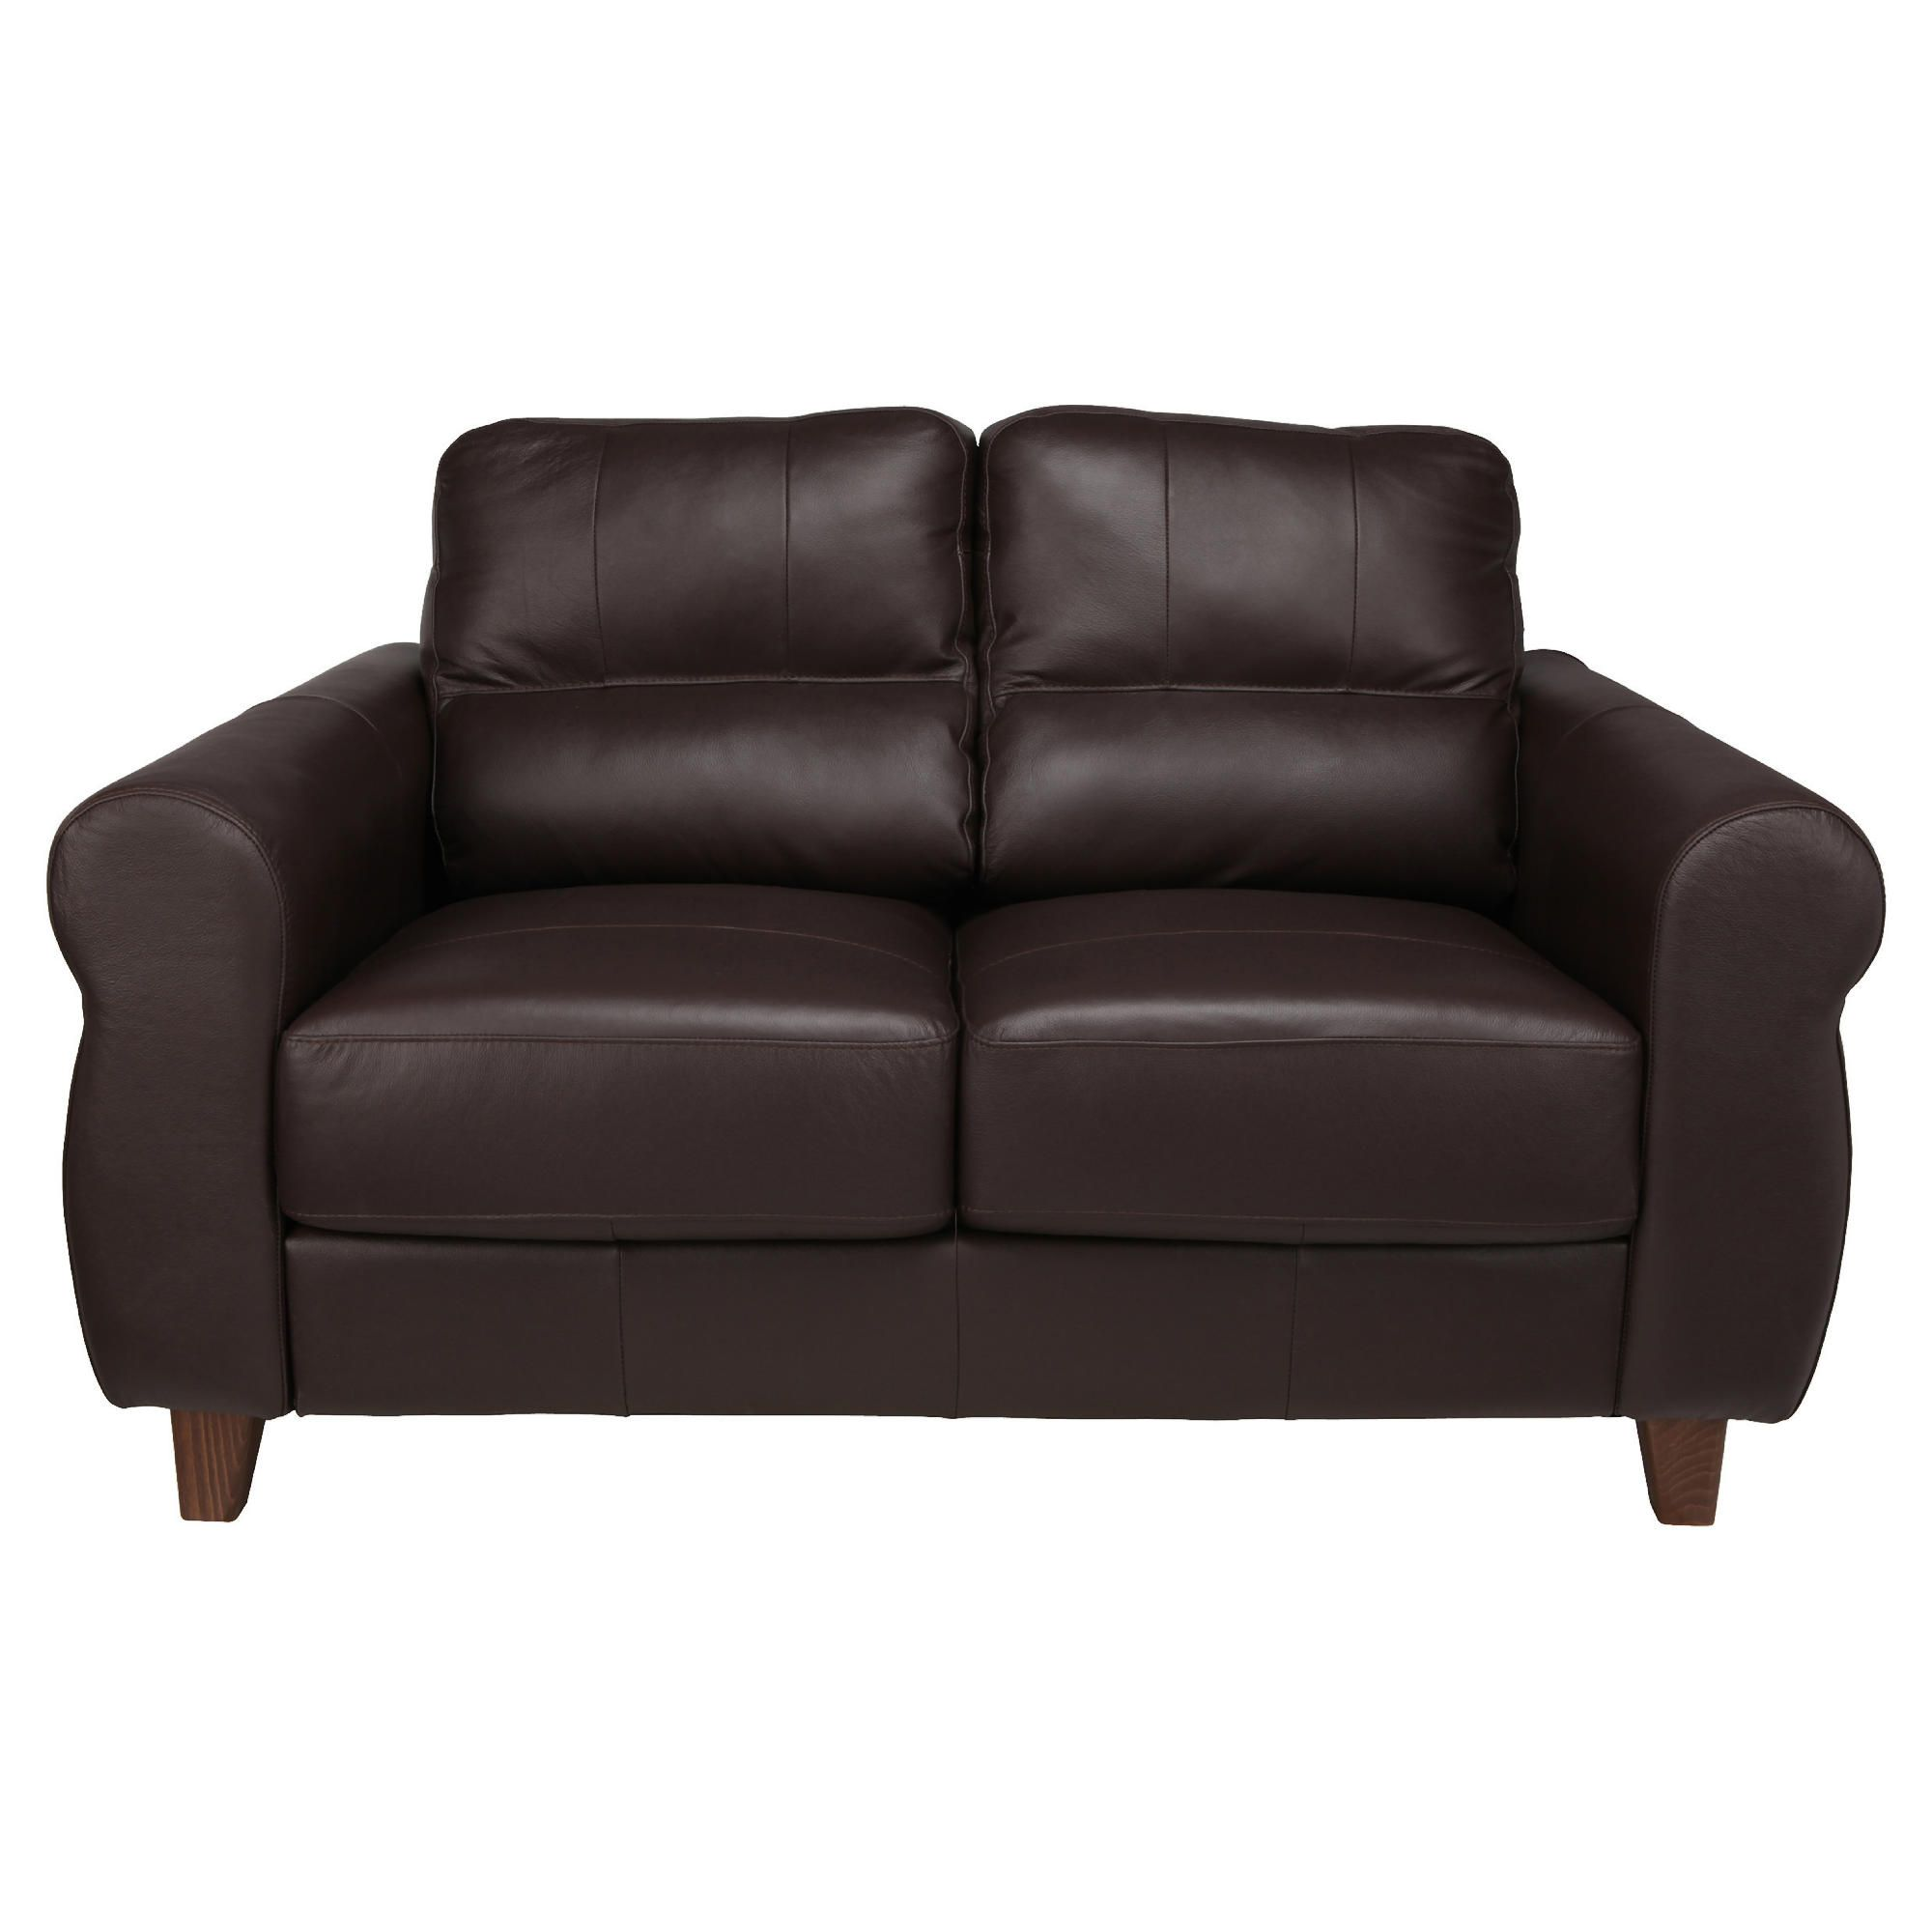 Fabio Small Leather Sofa Brown at Tescos Direct